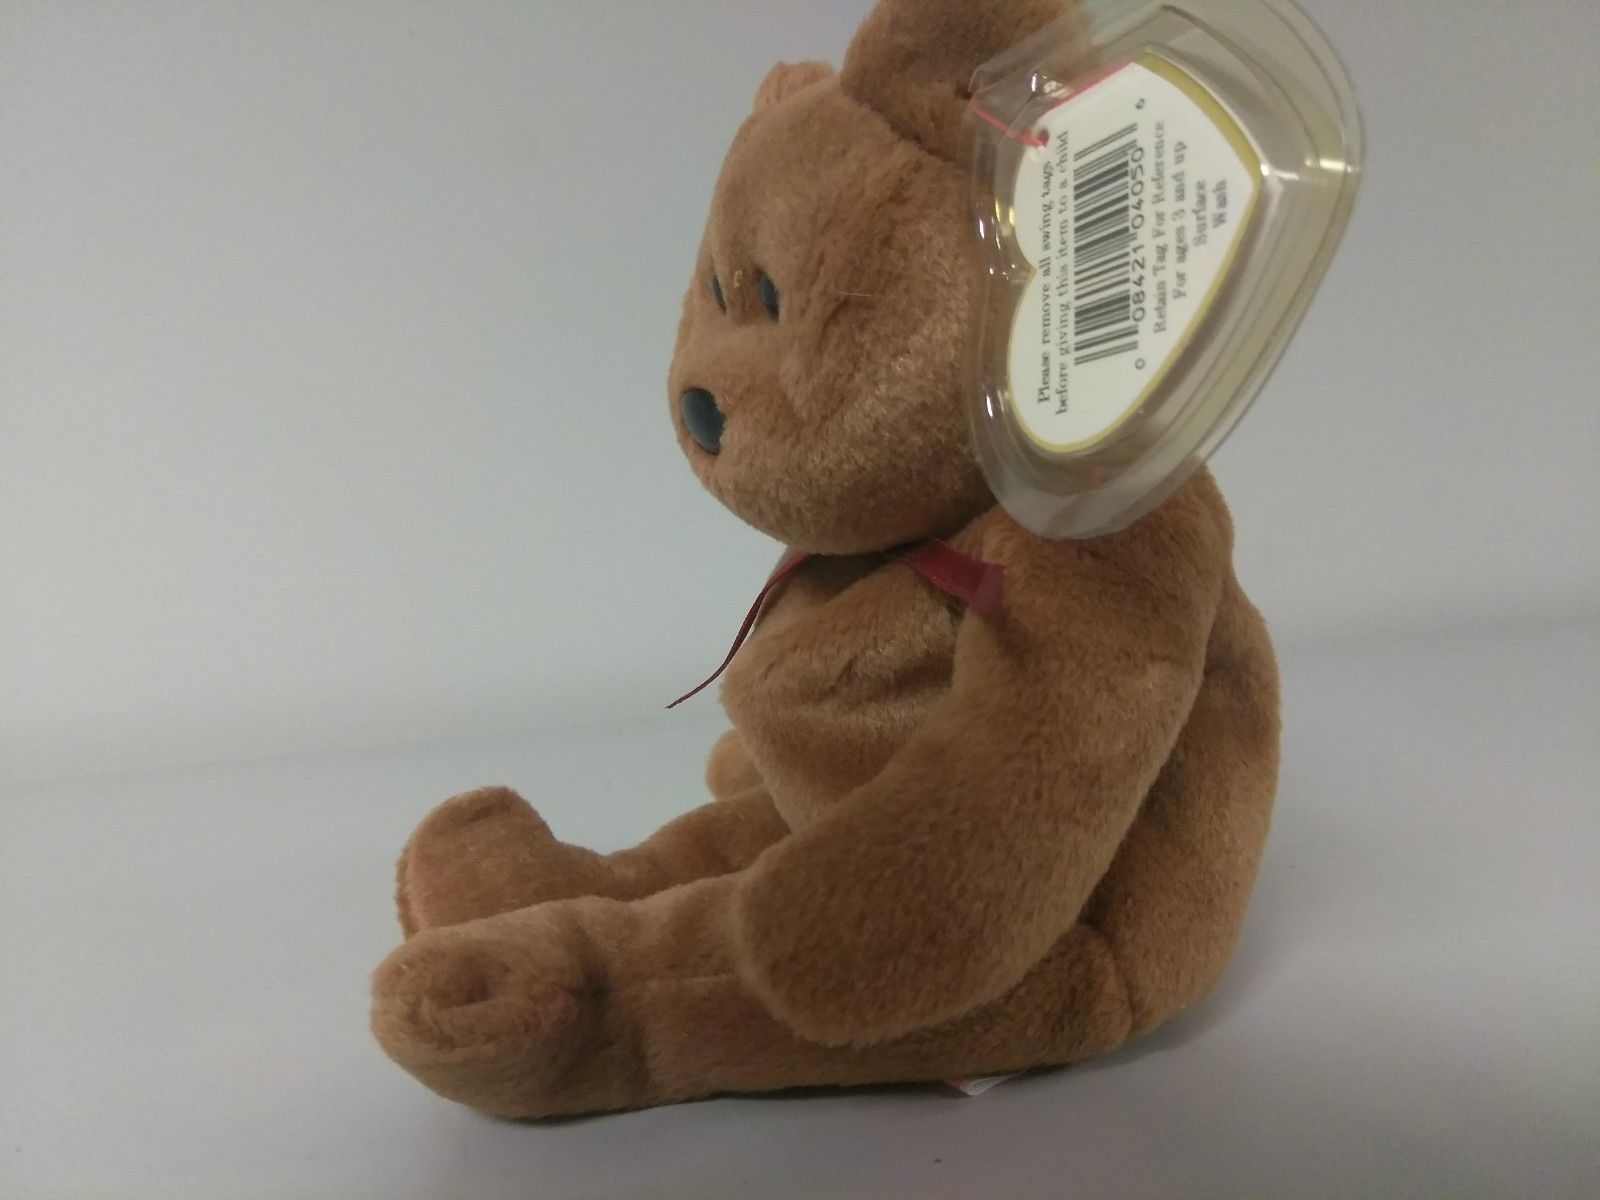 1st Edition TY Beanie Babies Rare Teddy no stamp, PVC and style line image 2